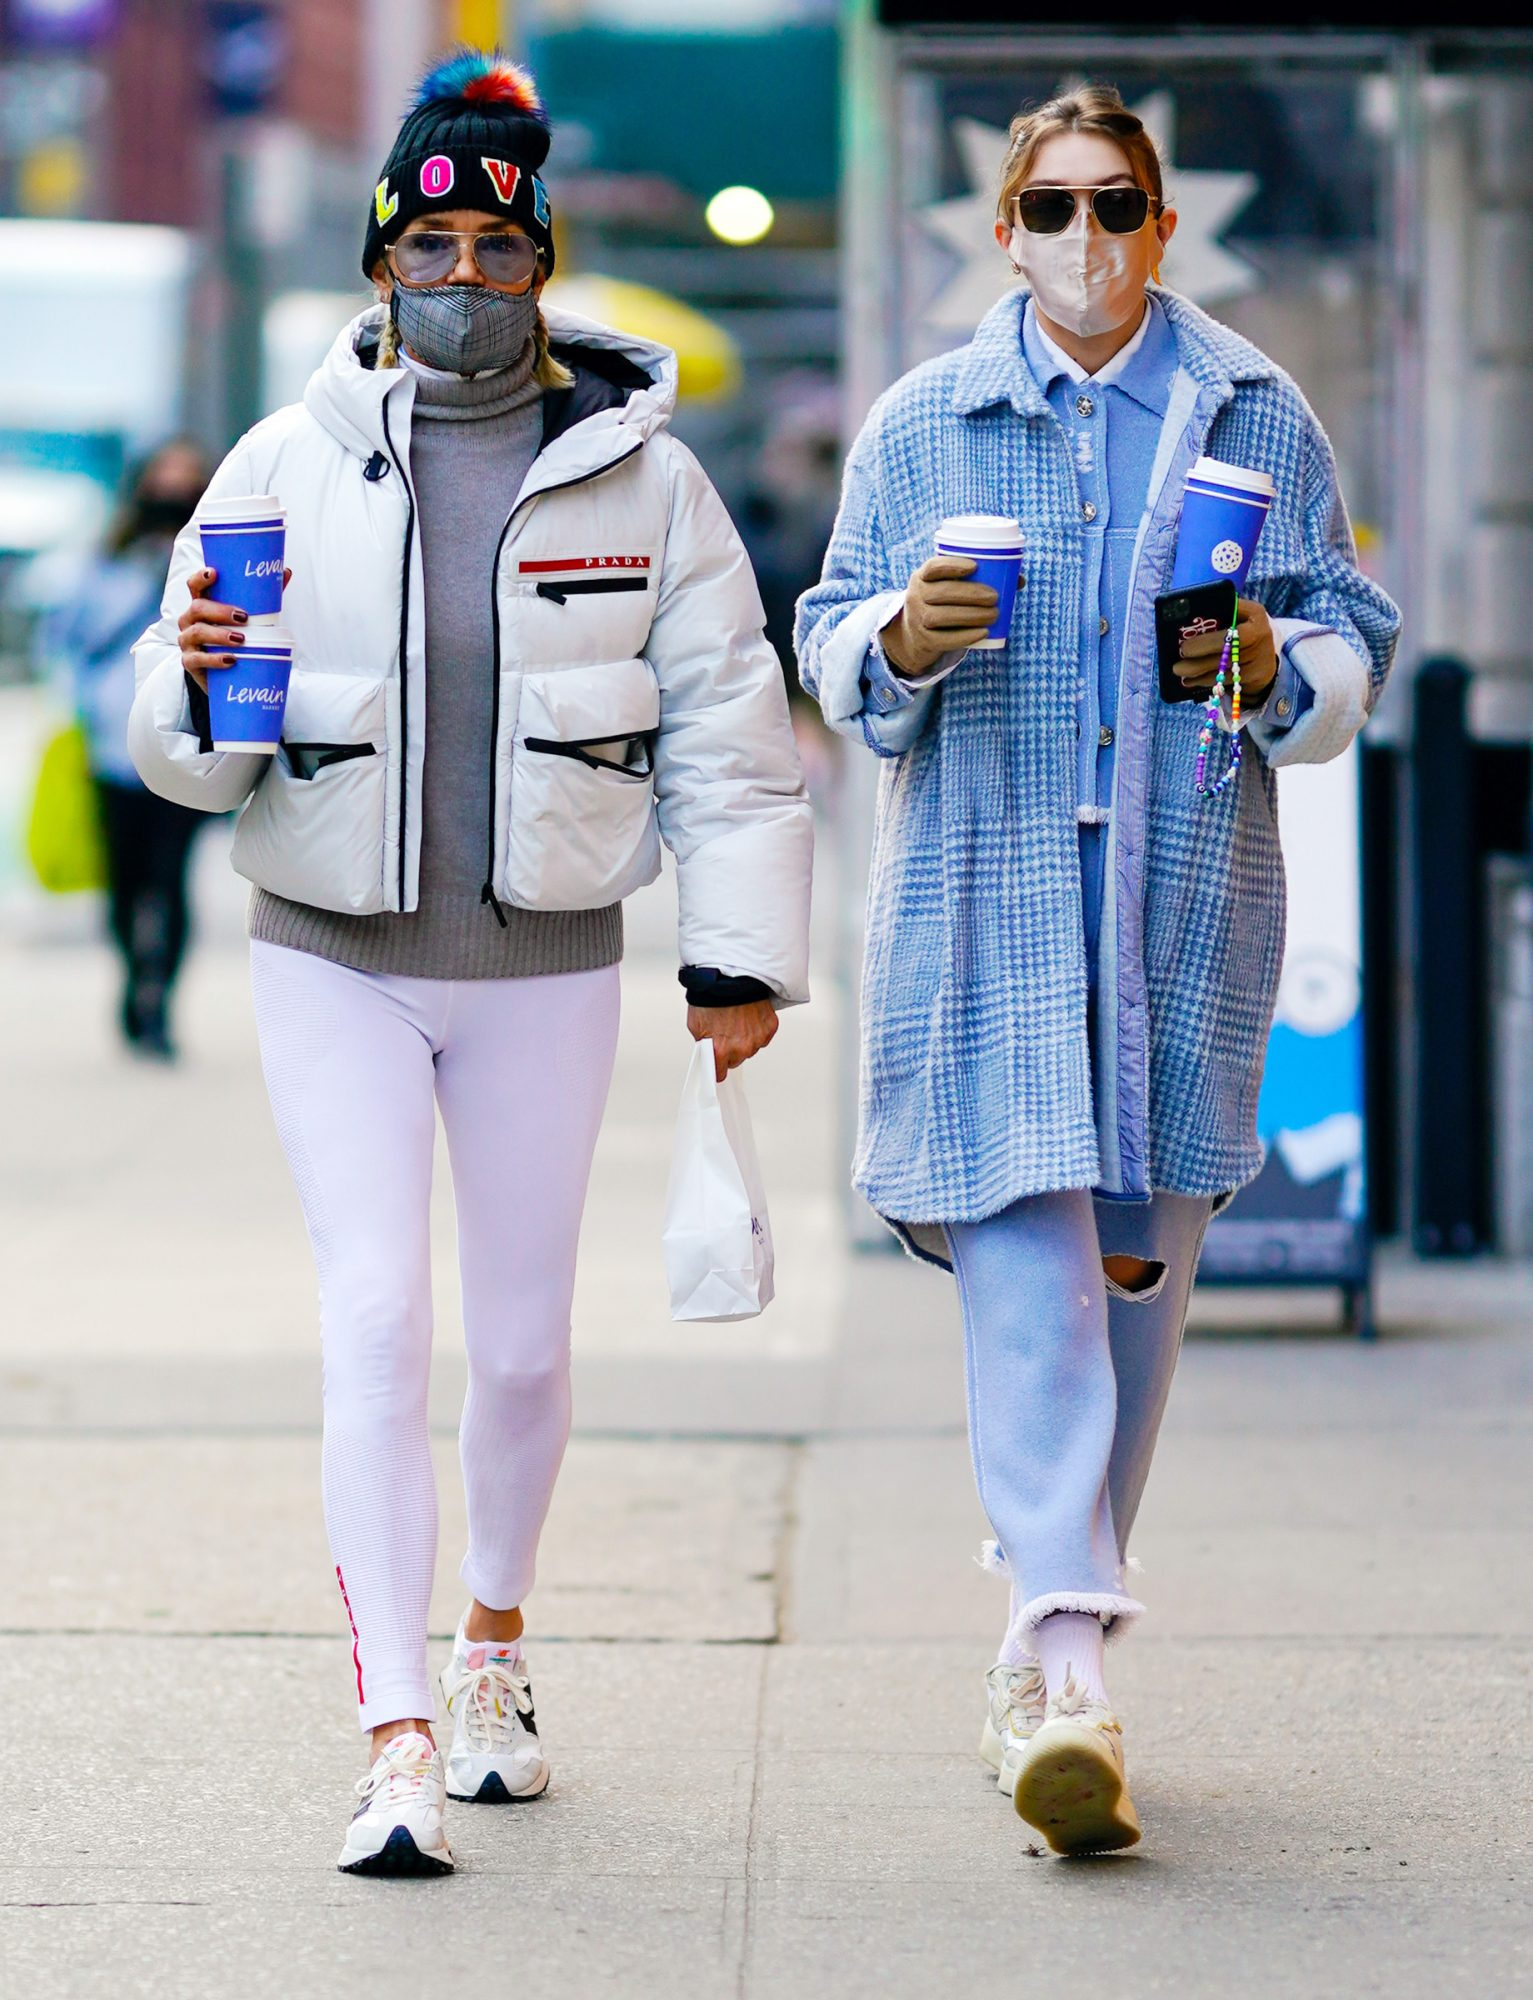 Gigi Hadid and Yolanda Hadid are Pictured Out on a Coffee Run in New York City.